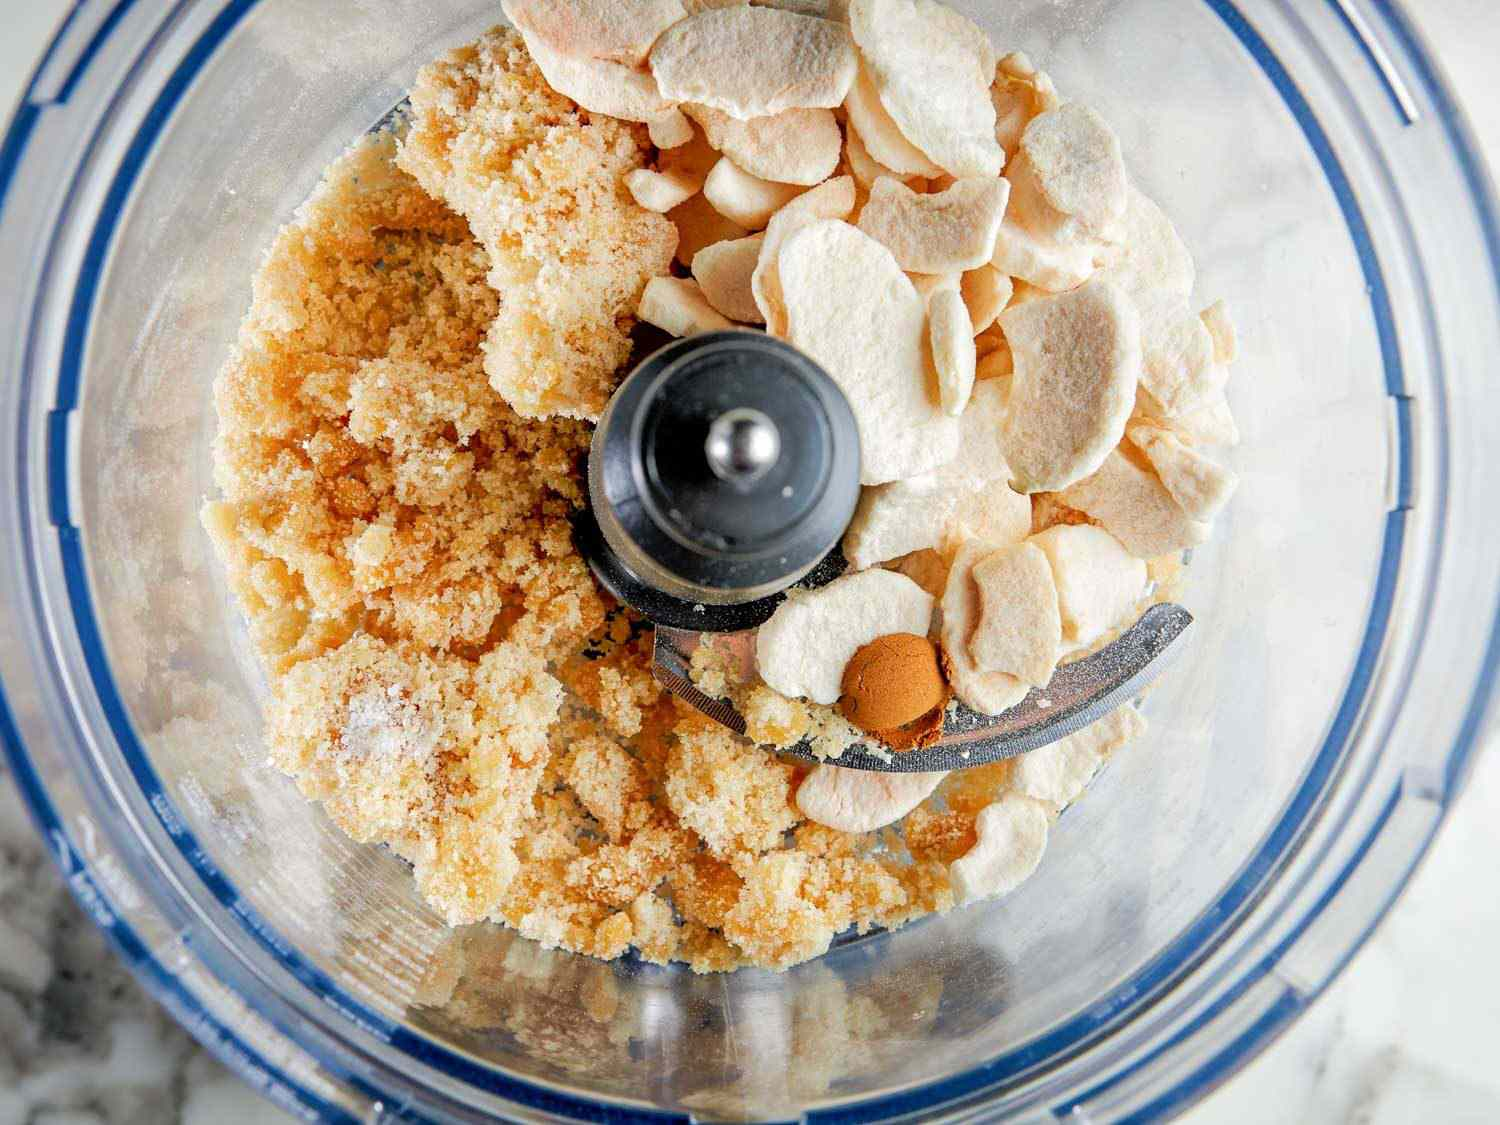 toasted sugar, freeze-dried apples, and spices in a food processor